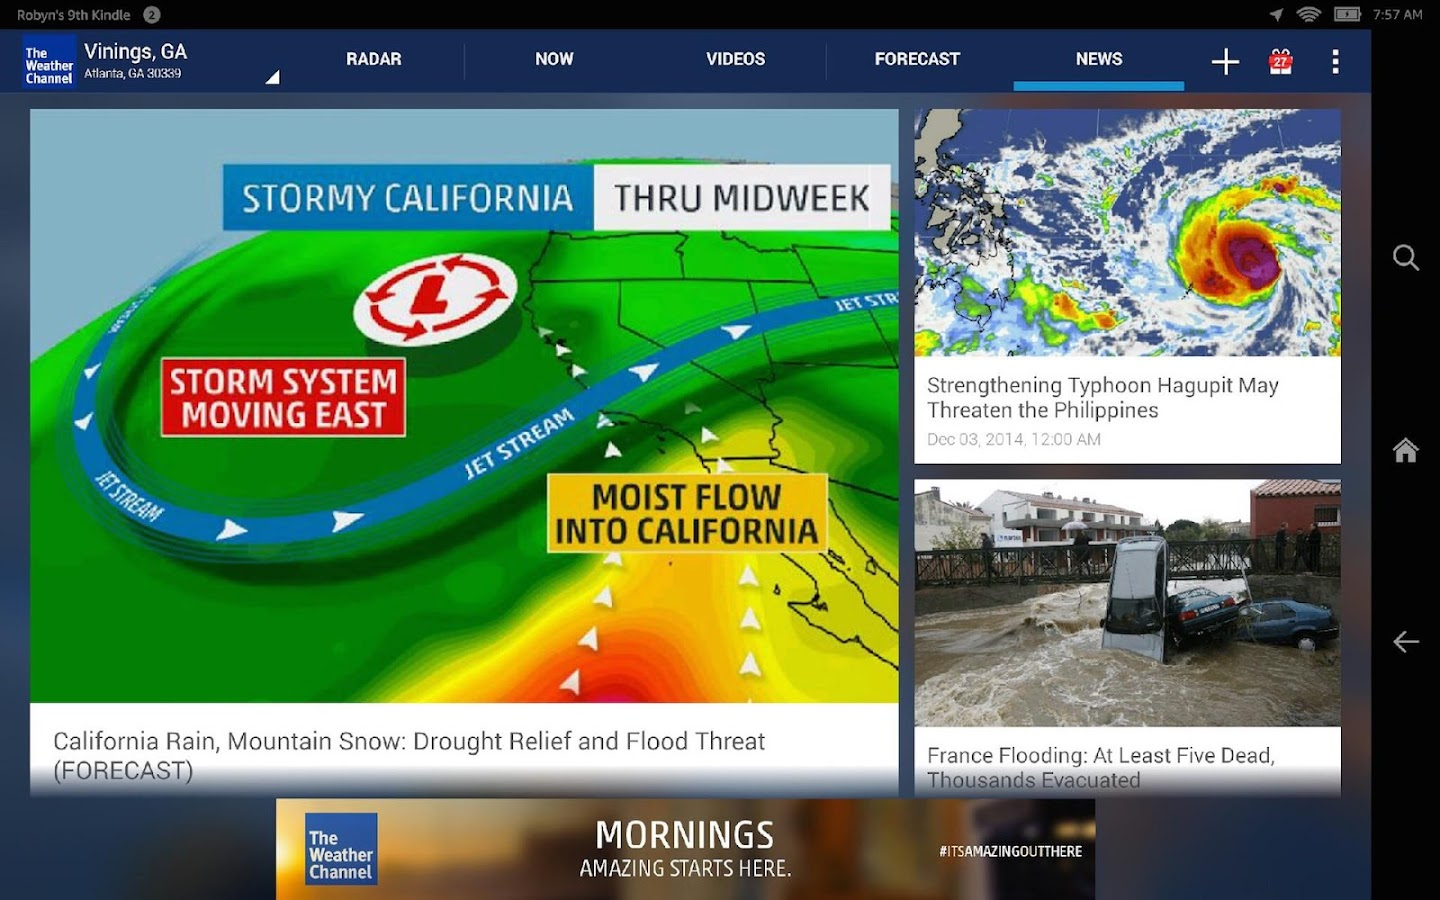 The-Weather-Channel 27